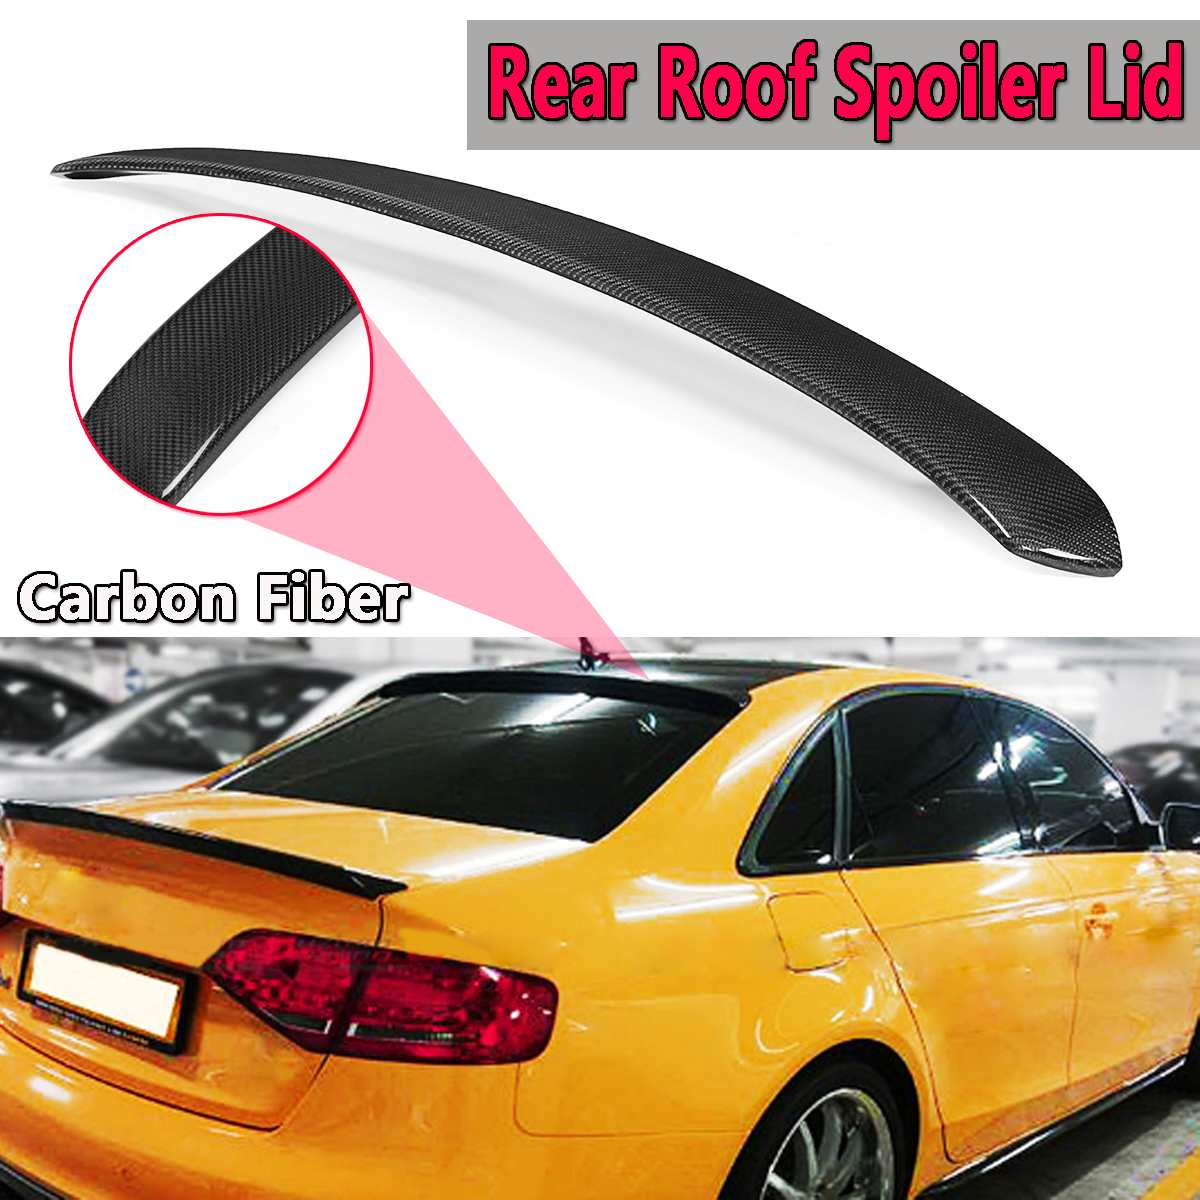 High Quality Real Carbon Fiber Rear Roof Spoiler Lid For AUDI A4 S4 B8 Quattro Sedan Models 2009-2016 Rear Wing Spoiler new hot 23cm card captor sakura tsubasa syaoran action figure toys collection christmas toy doll no box